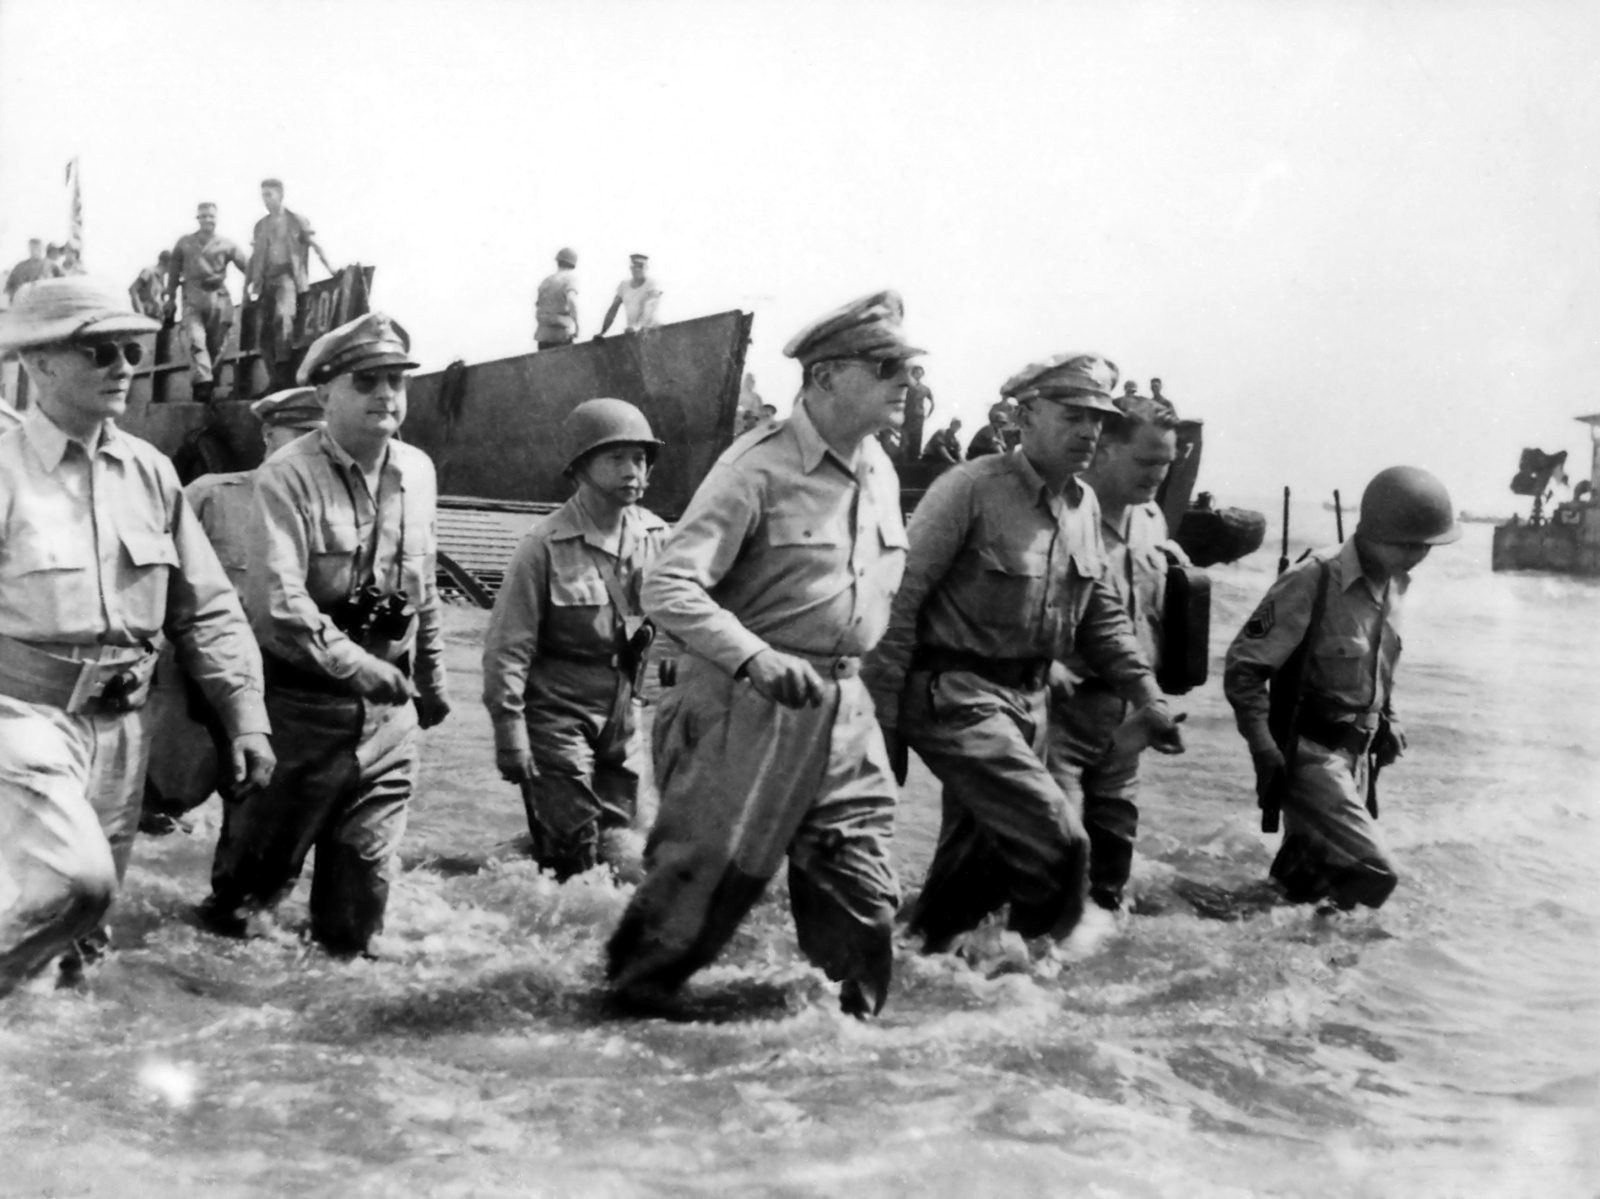 U.S. General Douglas MacArthur wades ashore during initial landings at Leyte, Philippine Islands, on October 20, 1944. Photo taken by U.S. Army Signal Corps officer Gaetano Faillace.